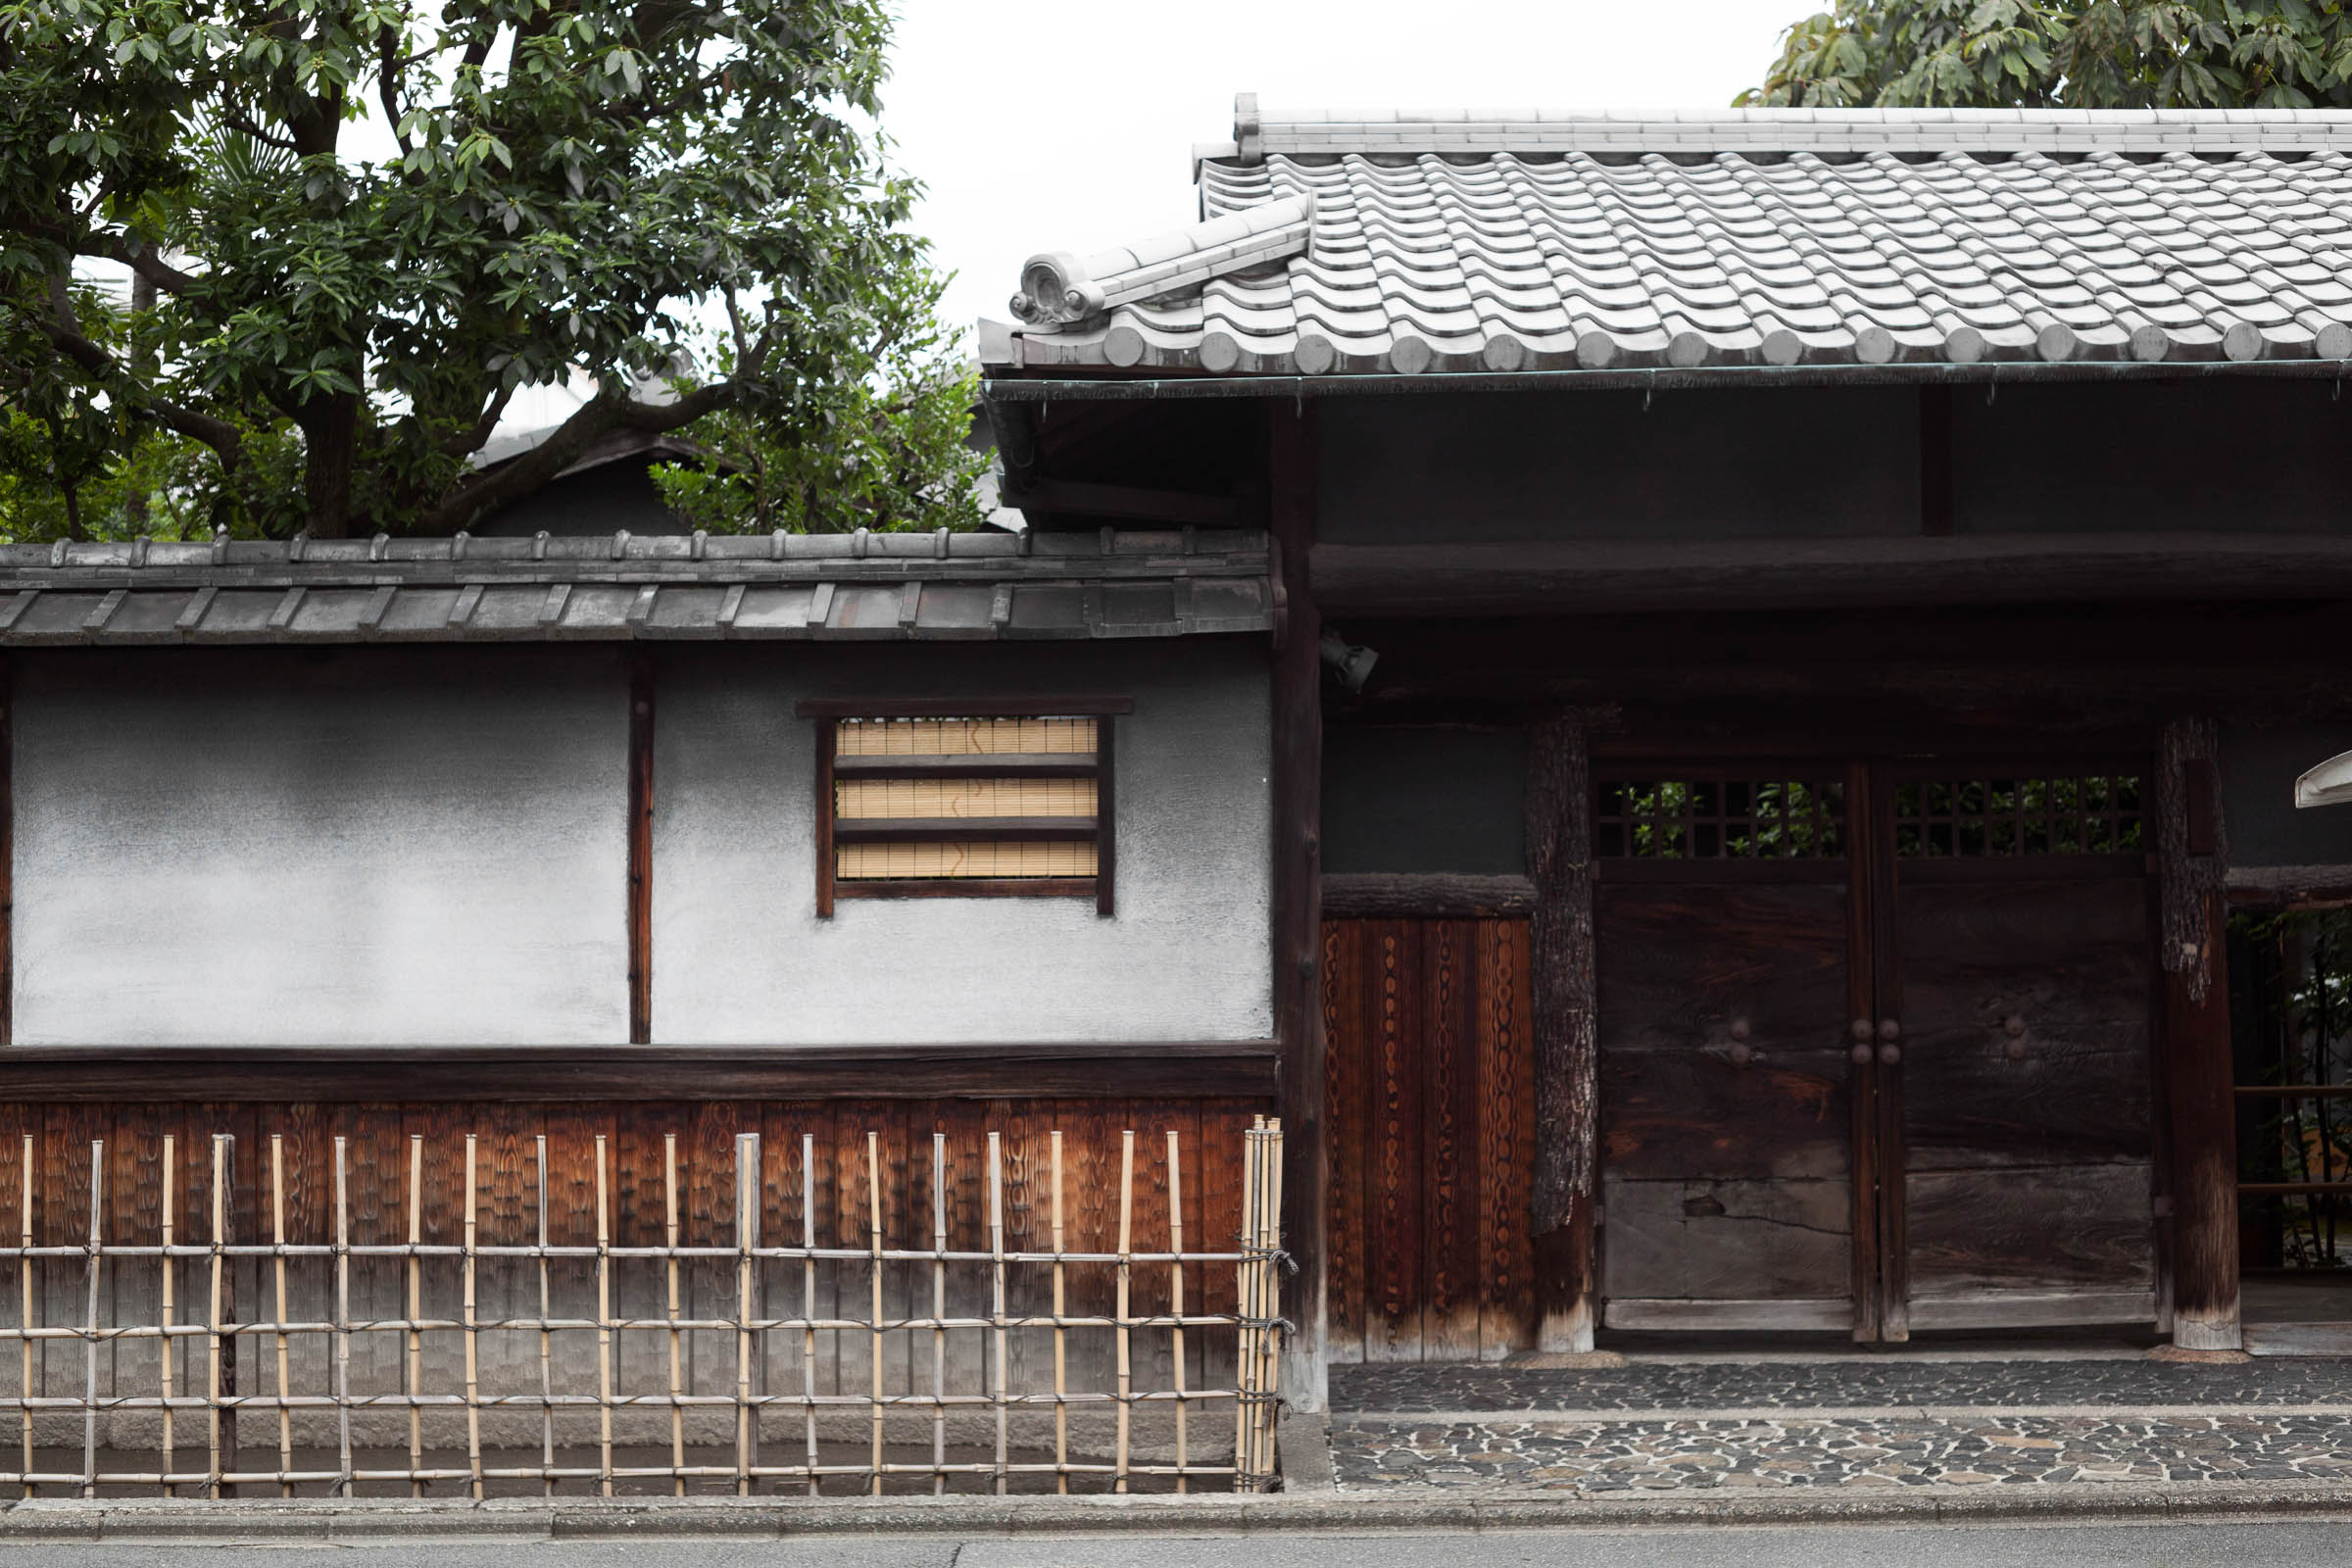 Chacon Images_Japan_Web-49.jpg